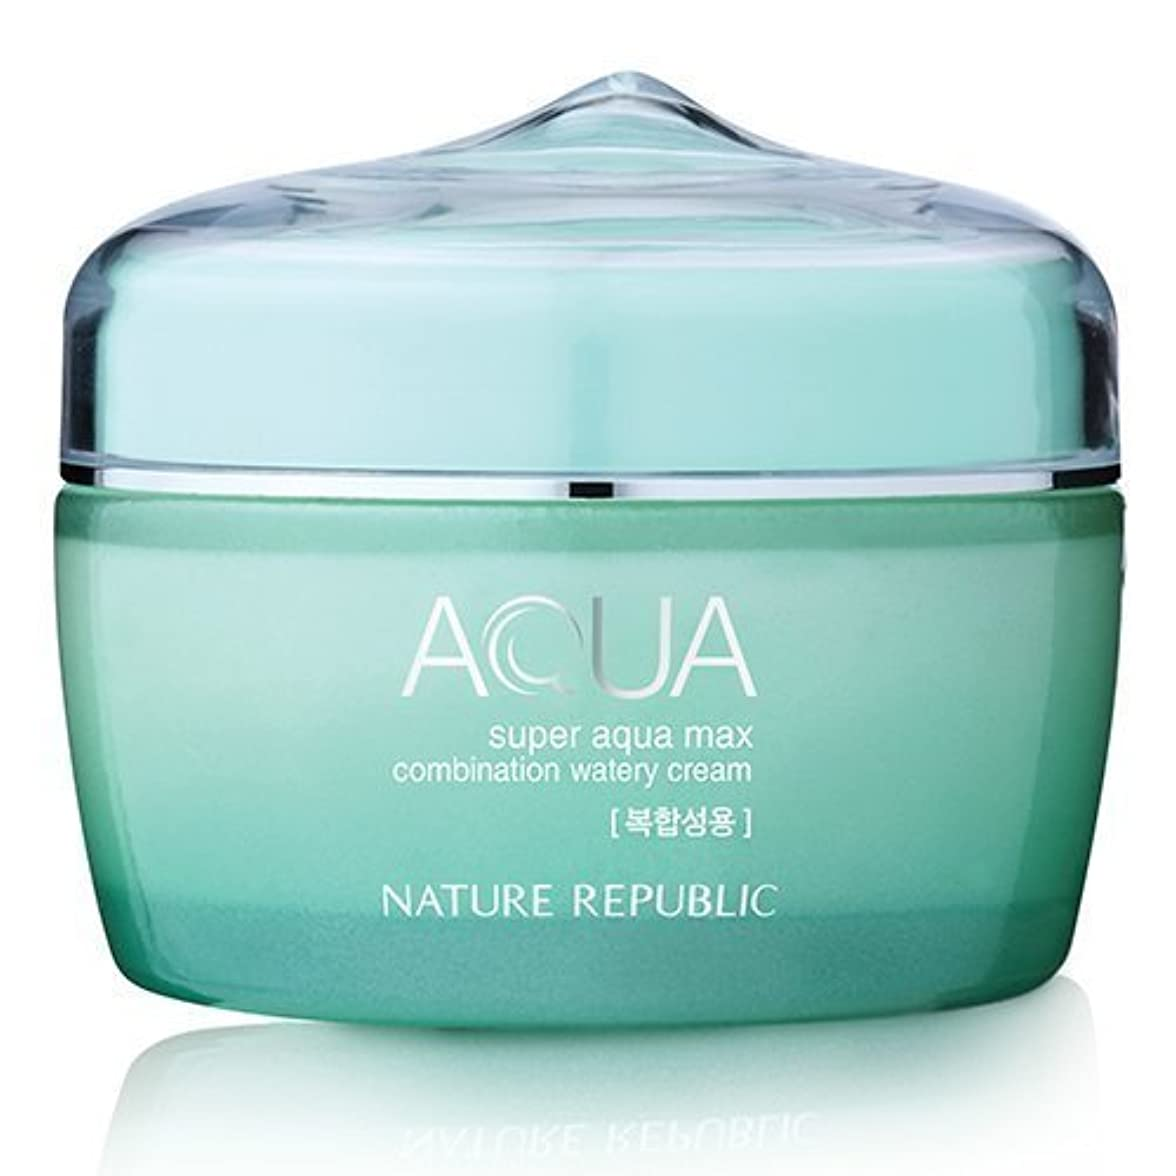 無人レスリング逆さまにNature Republic Super Aqua Max Combination Watery Cream 80ml